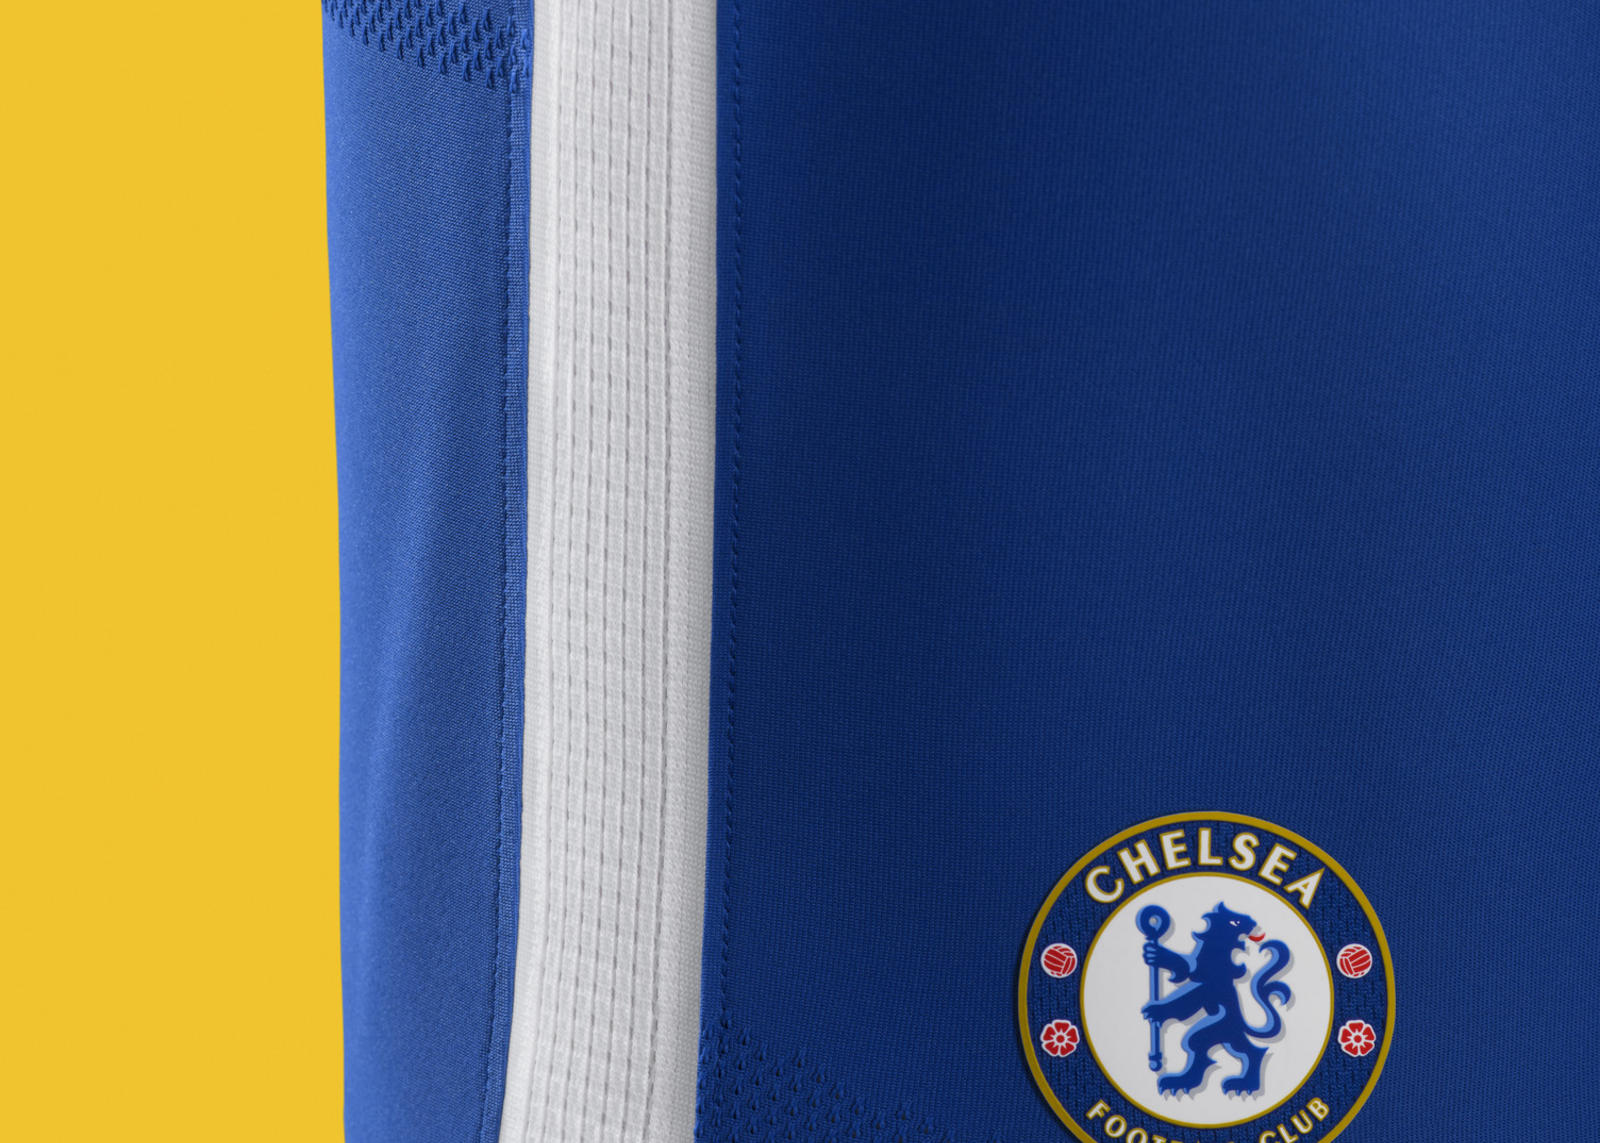 Chelsea Fc And Nike Join Forces To Unveil Home And Chelsea